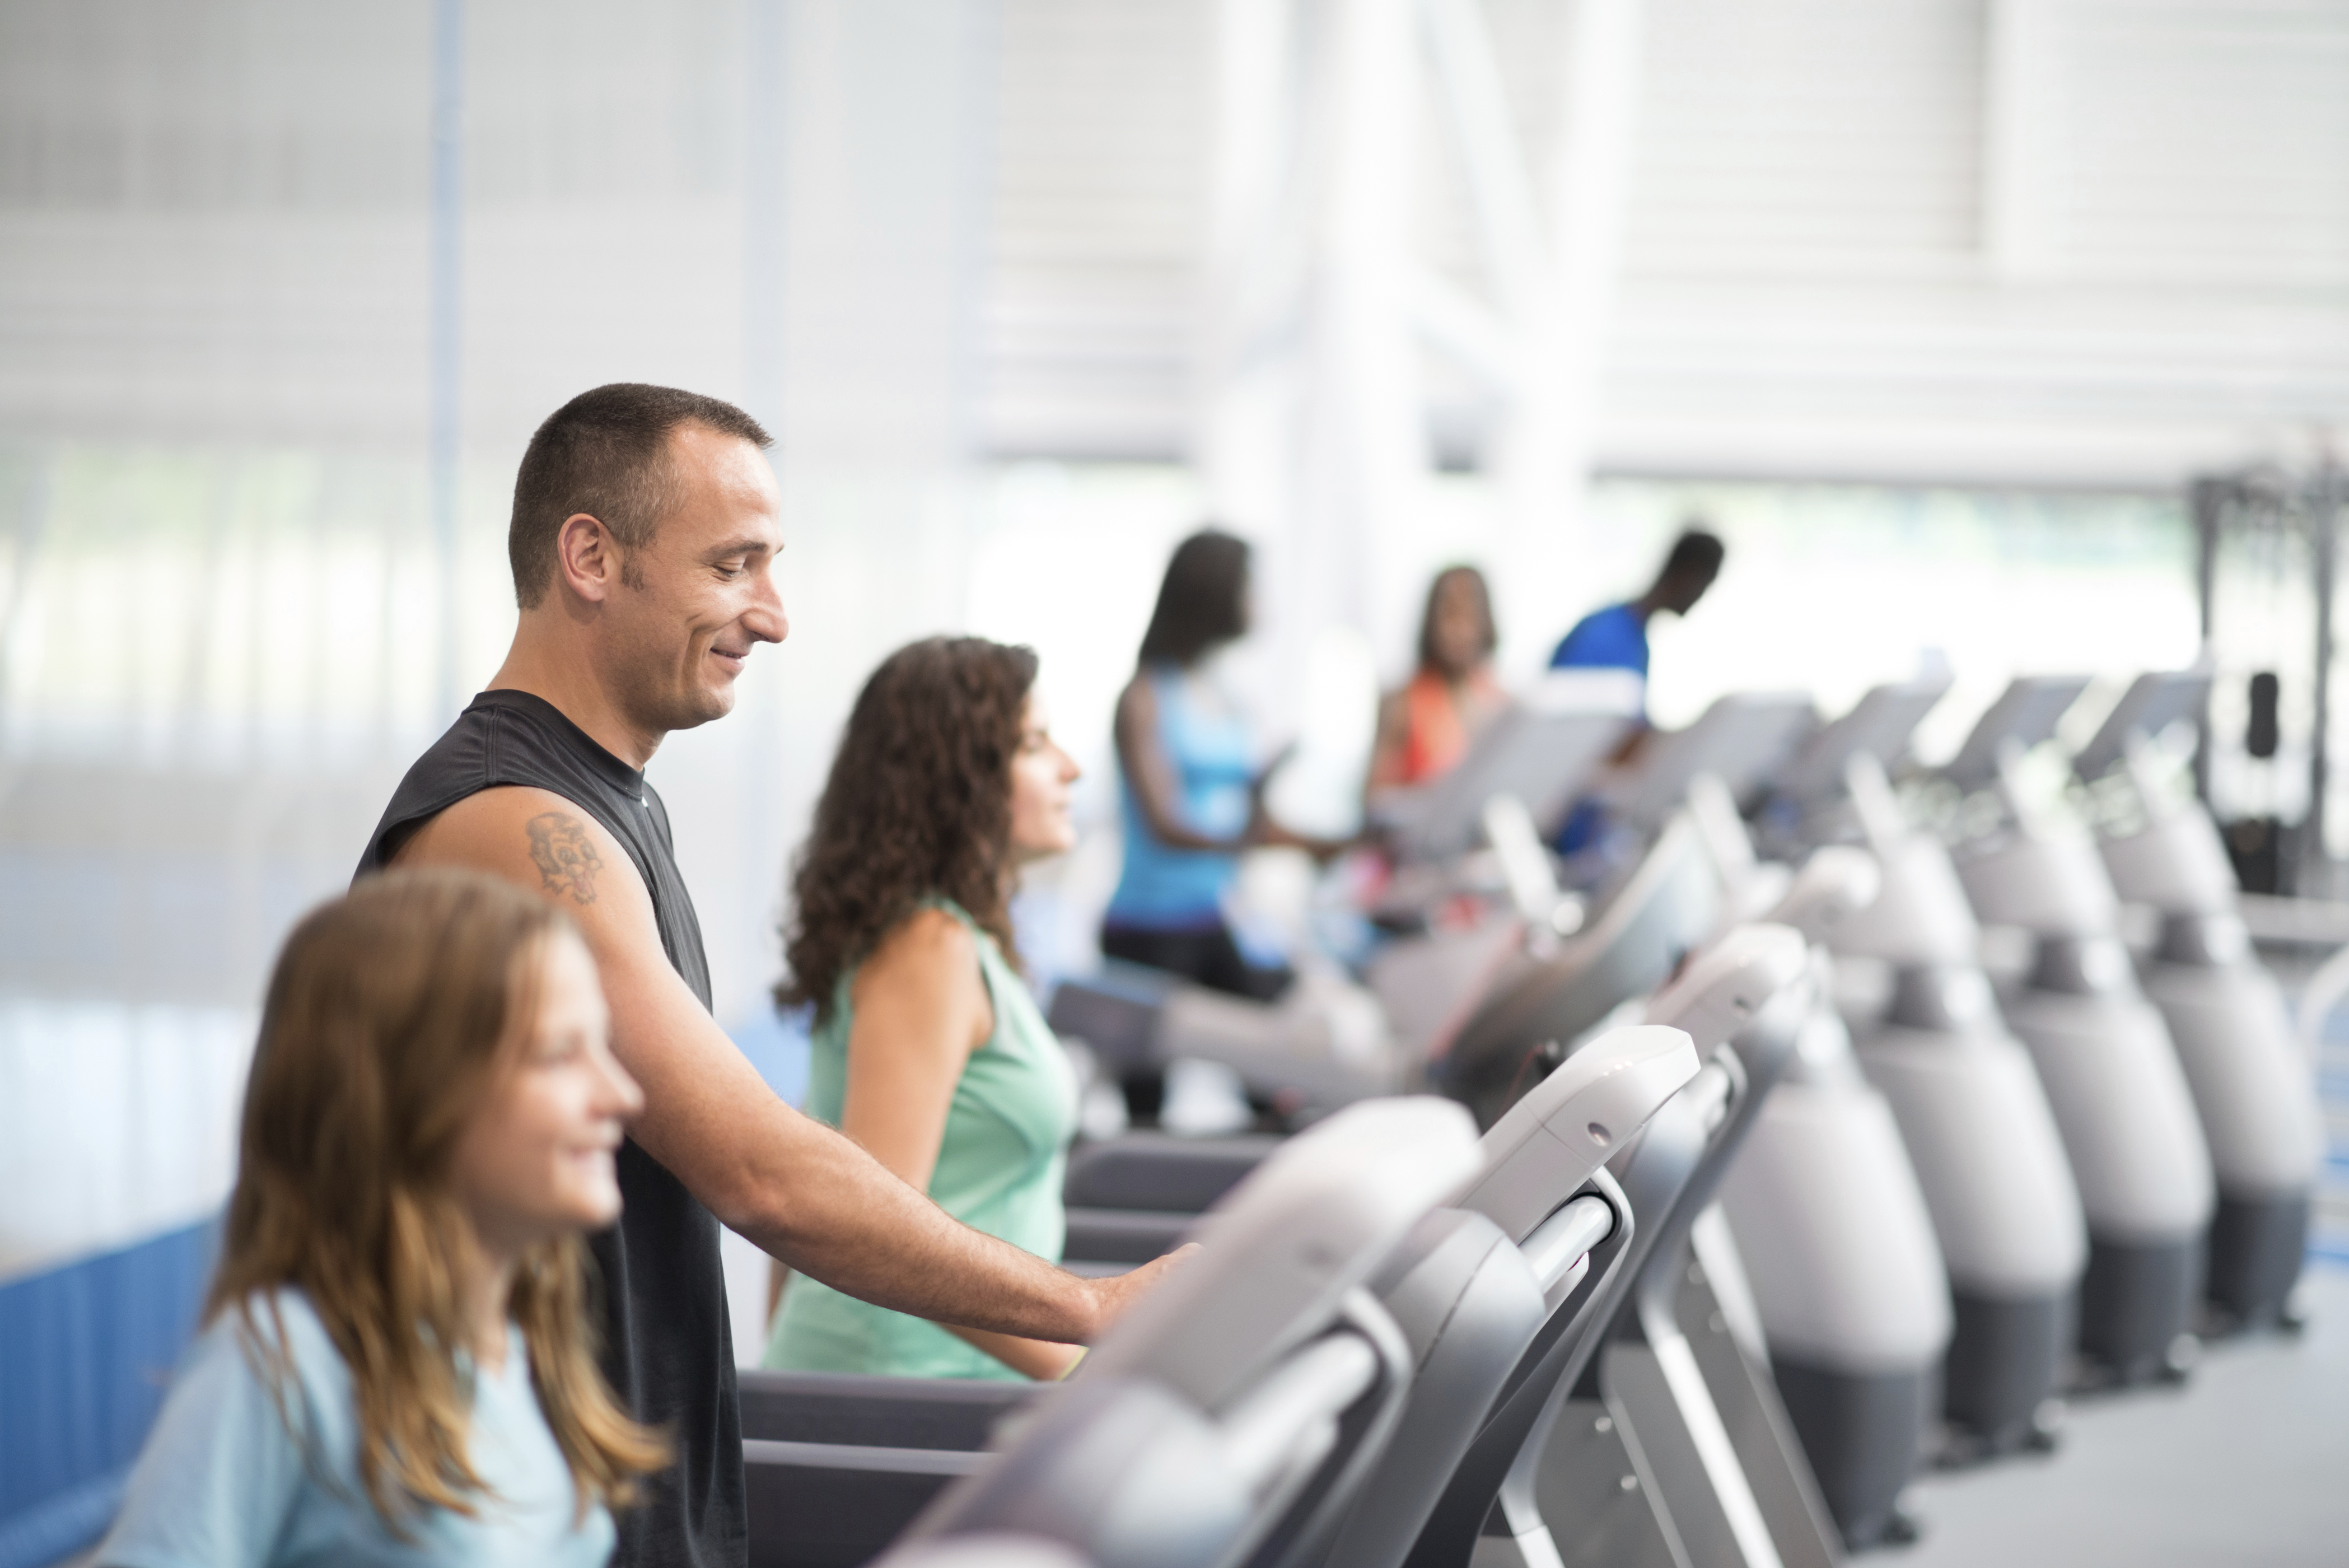 Stoke Mandeville Stadium in providing the best facilities and value for money for its member